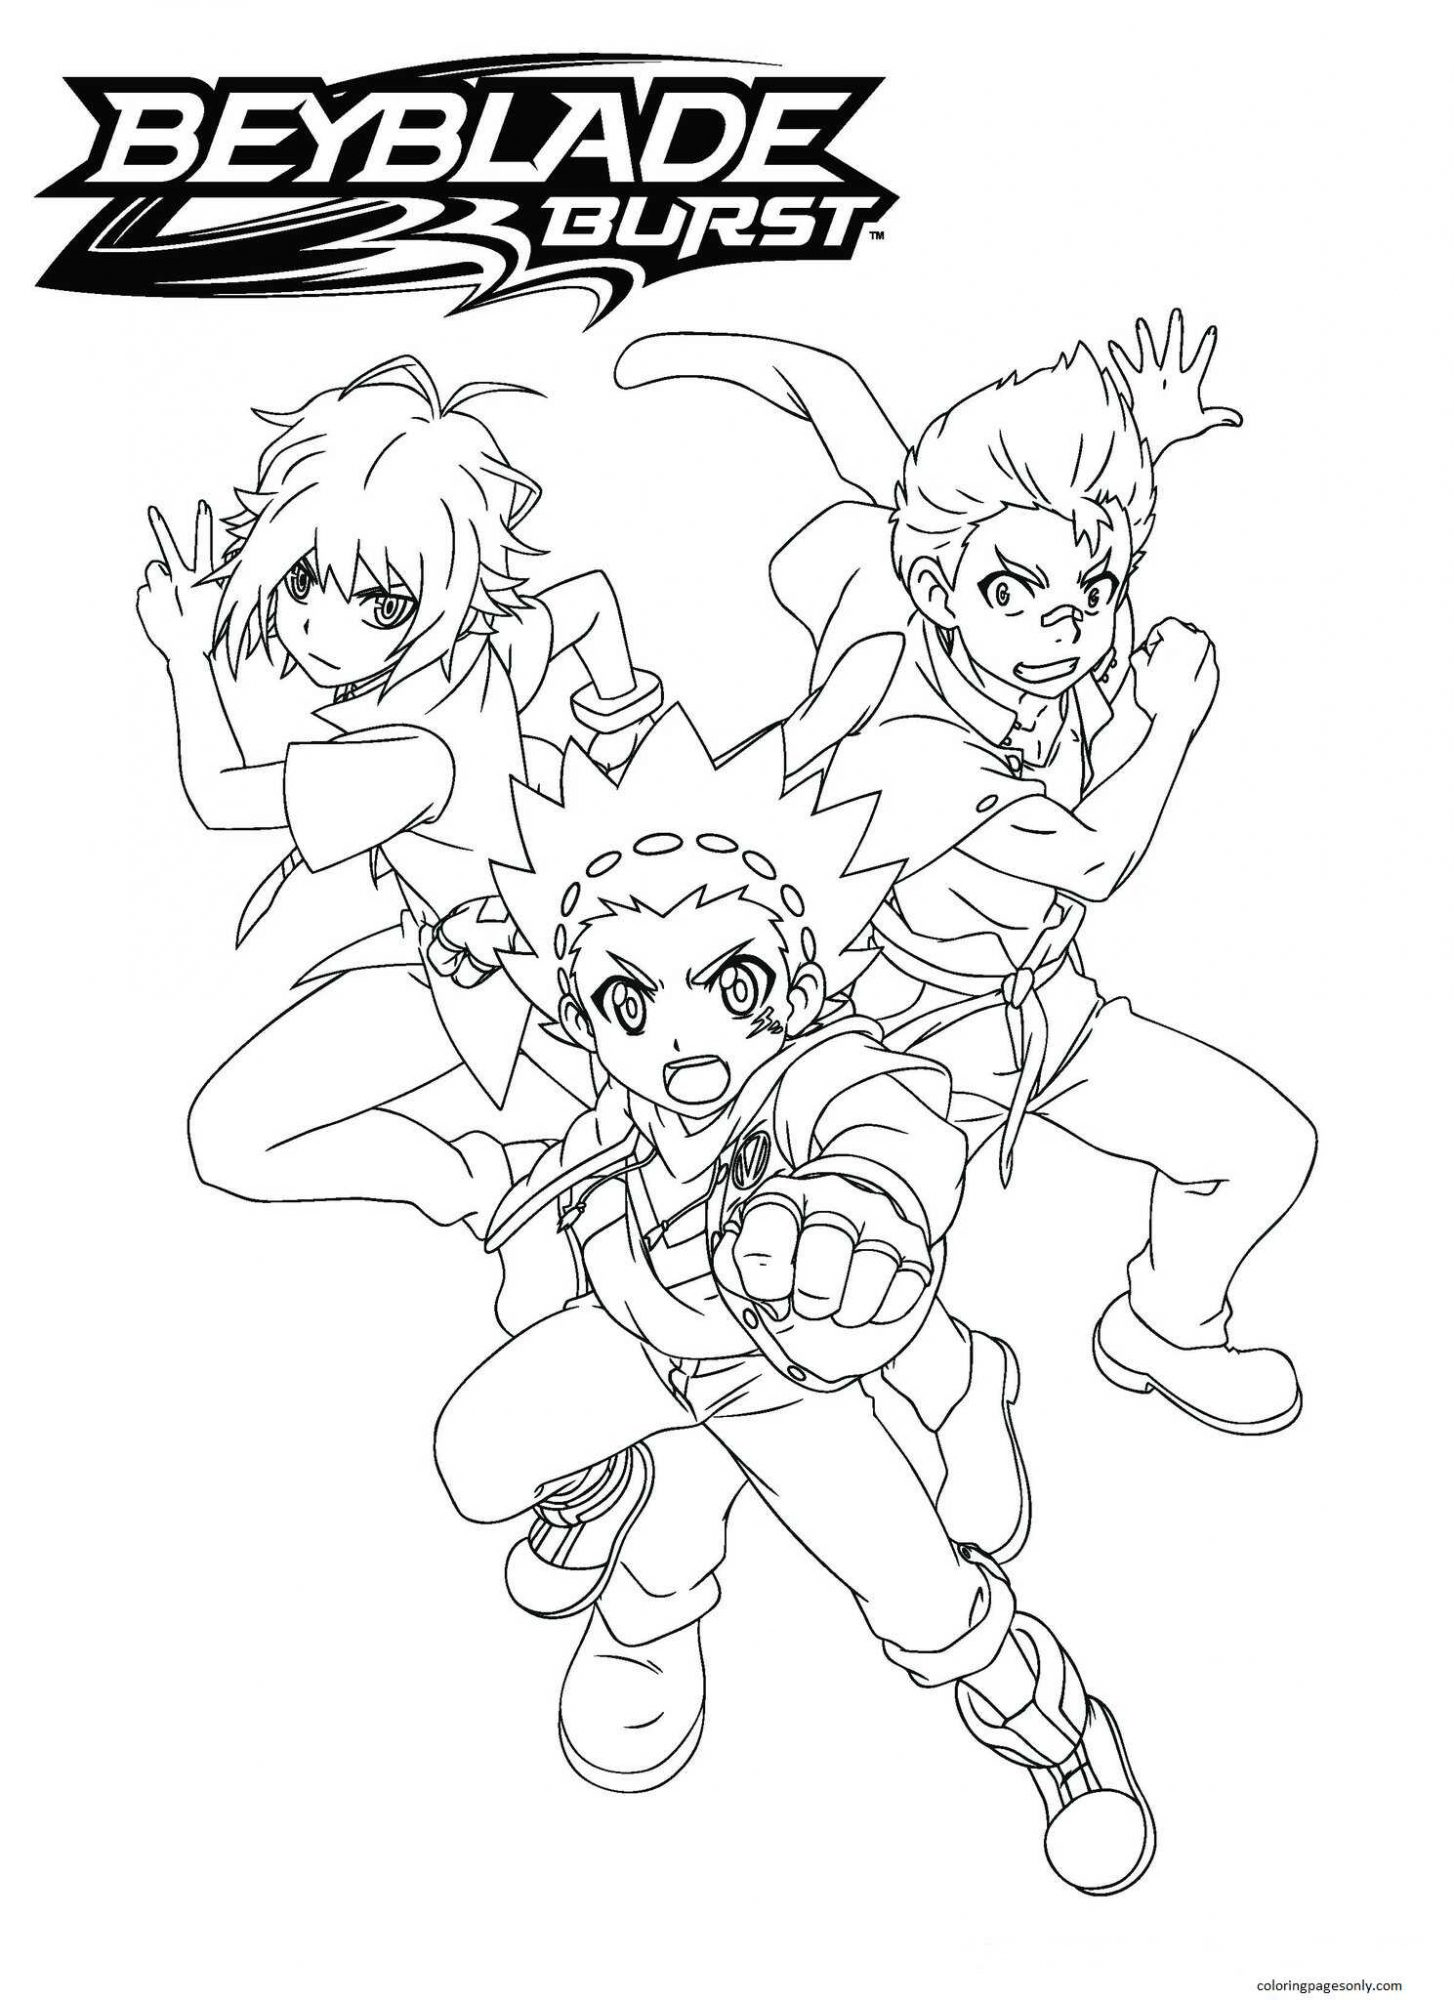 Beyblade Burst 20 Coloring Page